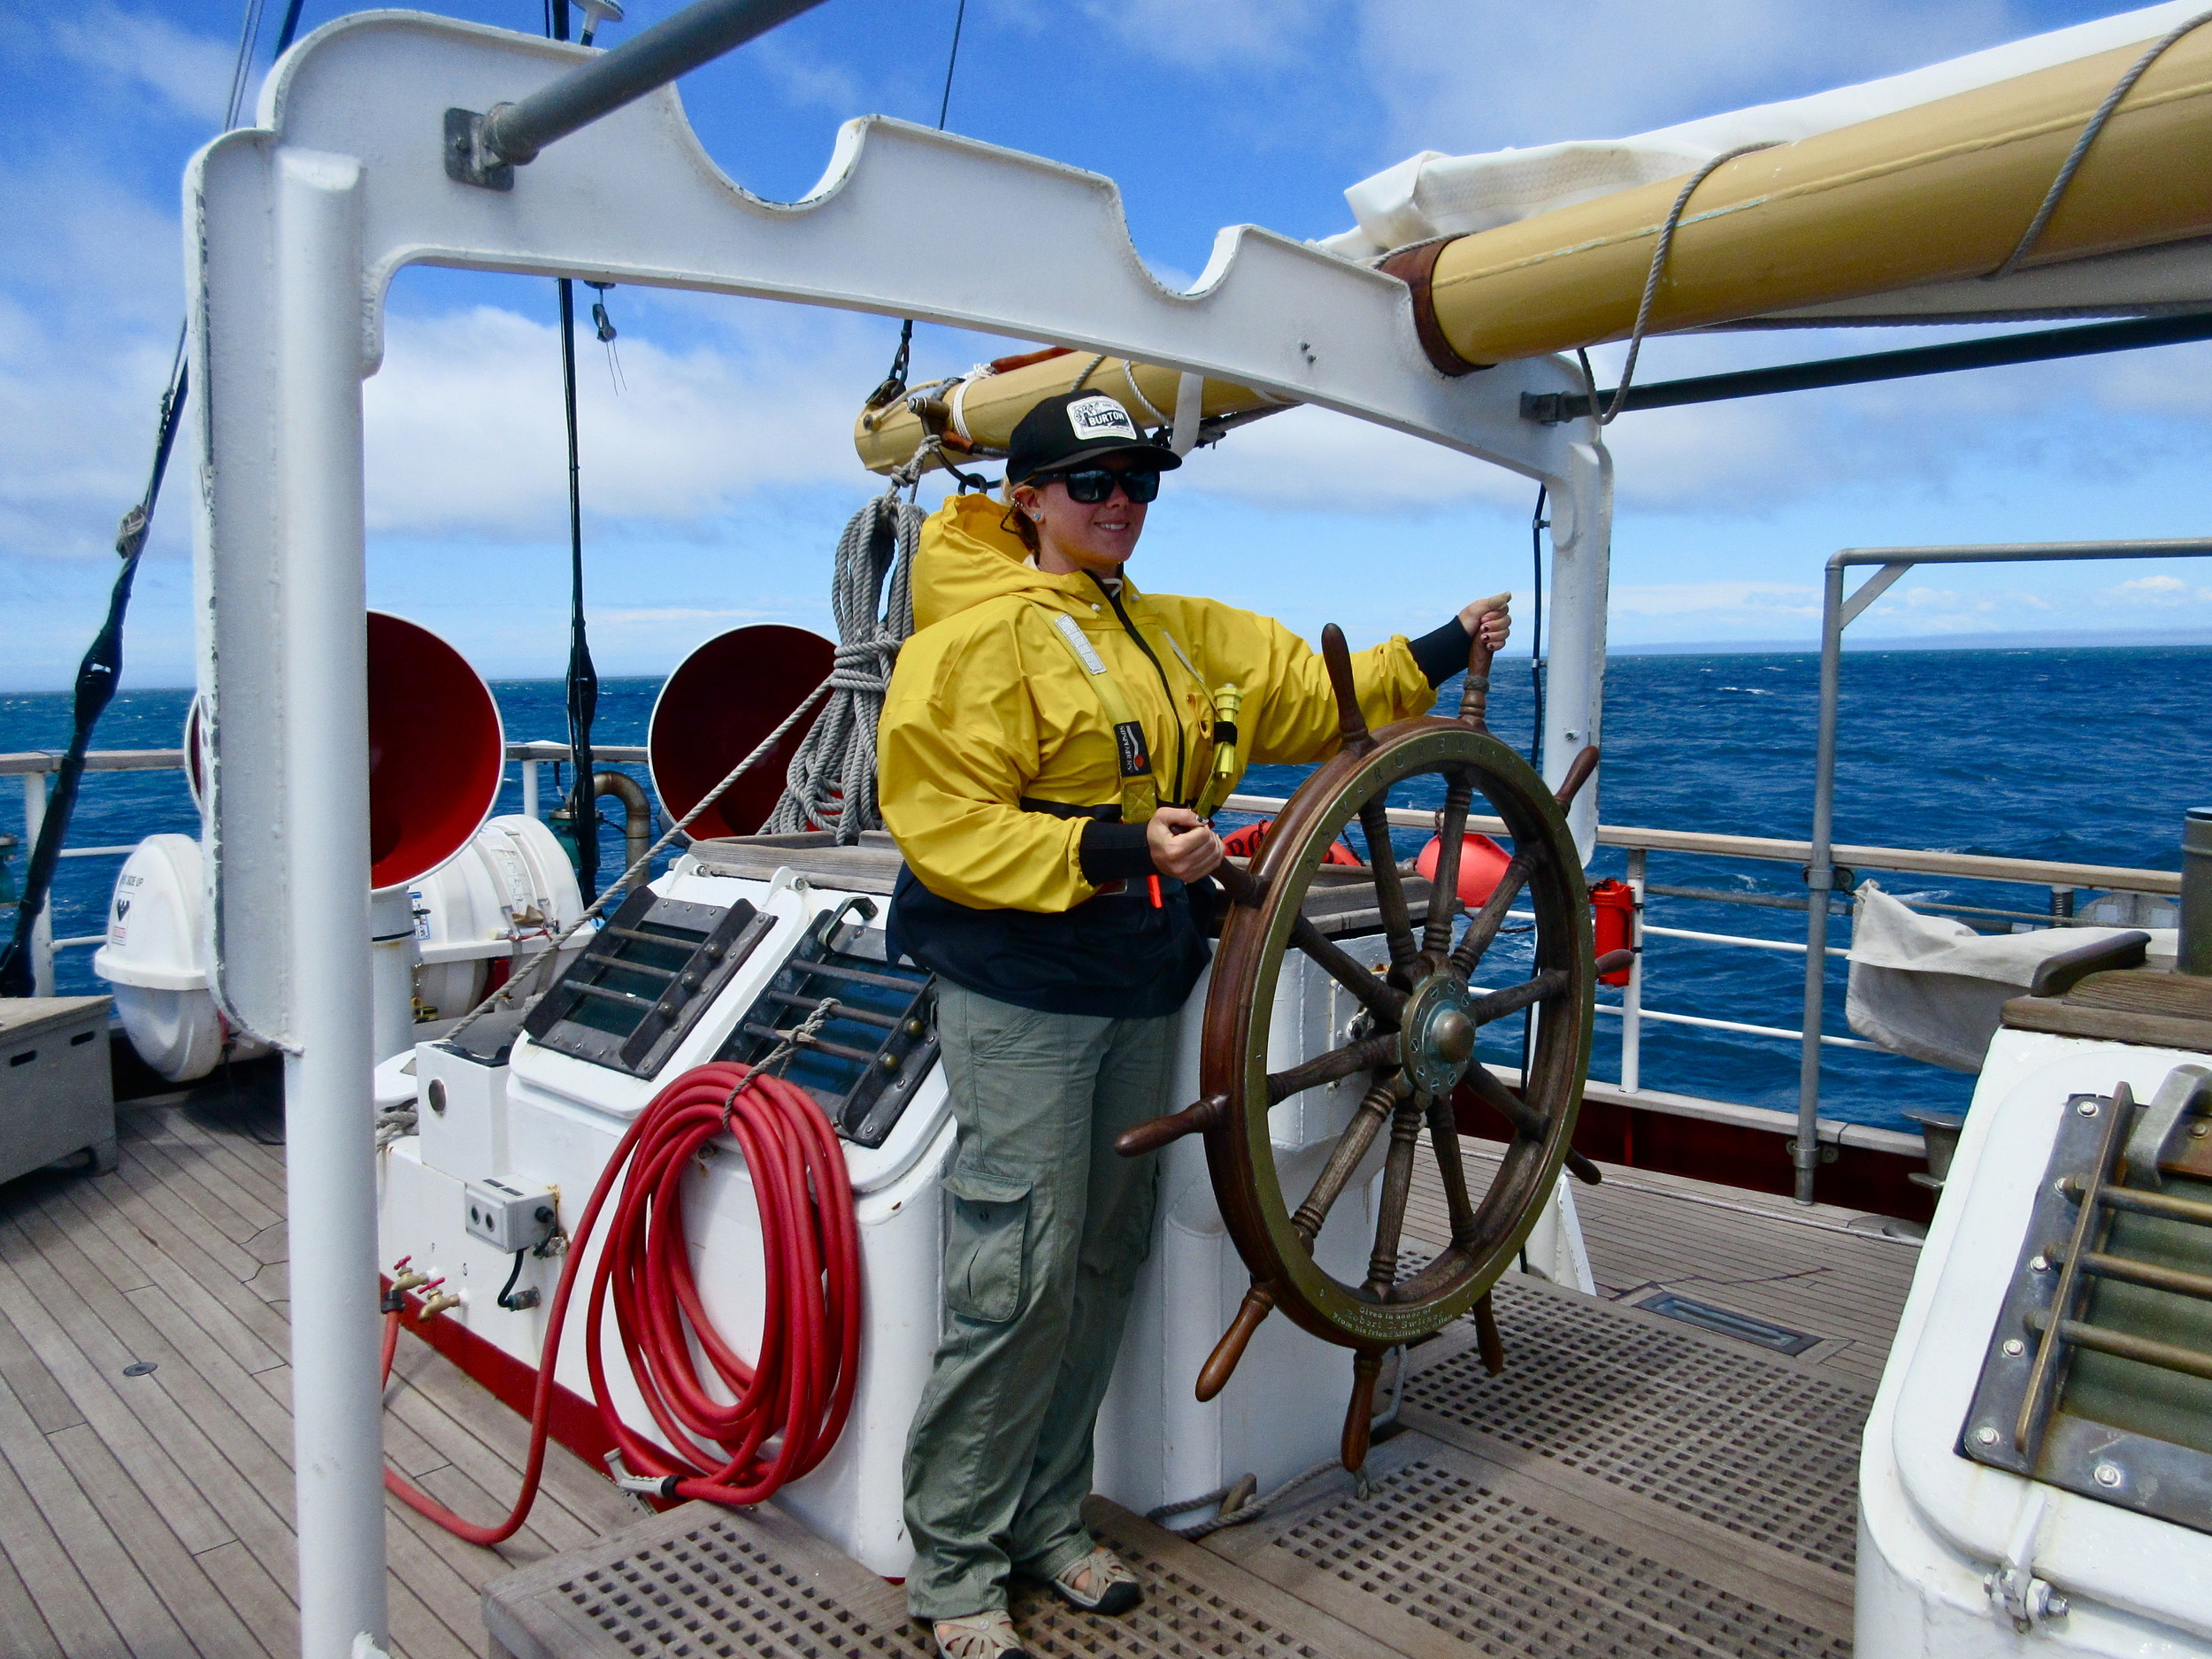 Manning the wheel during a Sea Education Association trip to New Zealand in 2014.